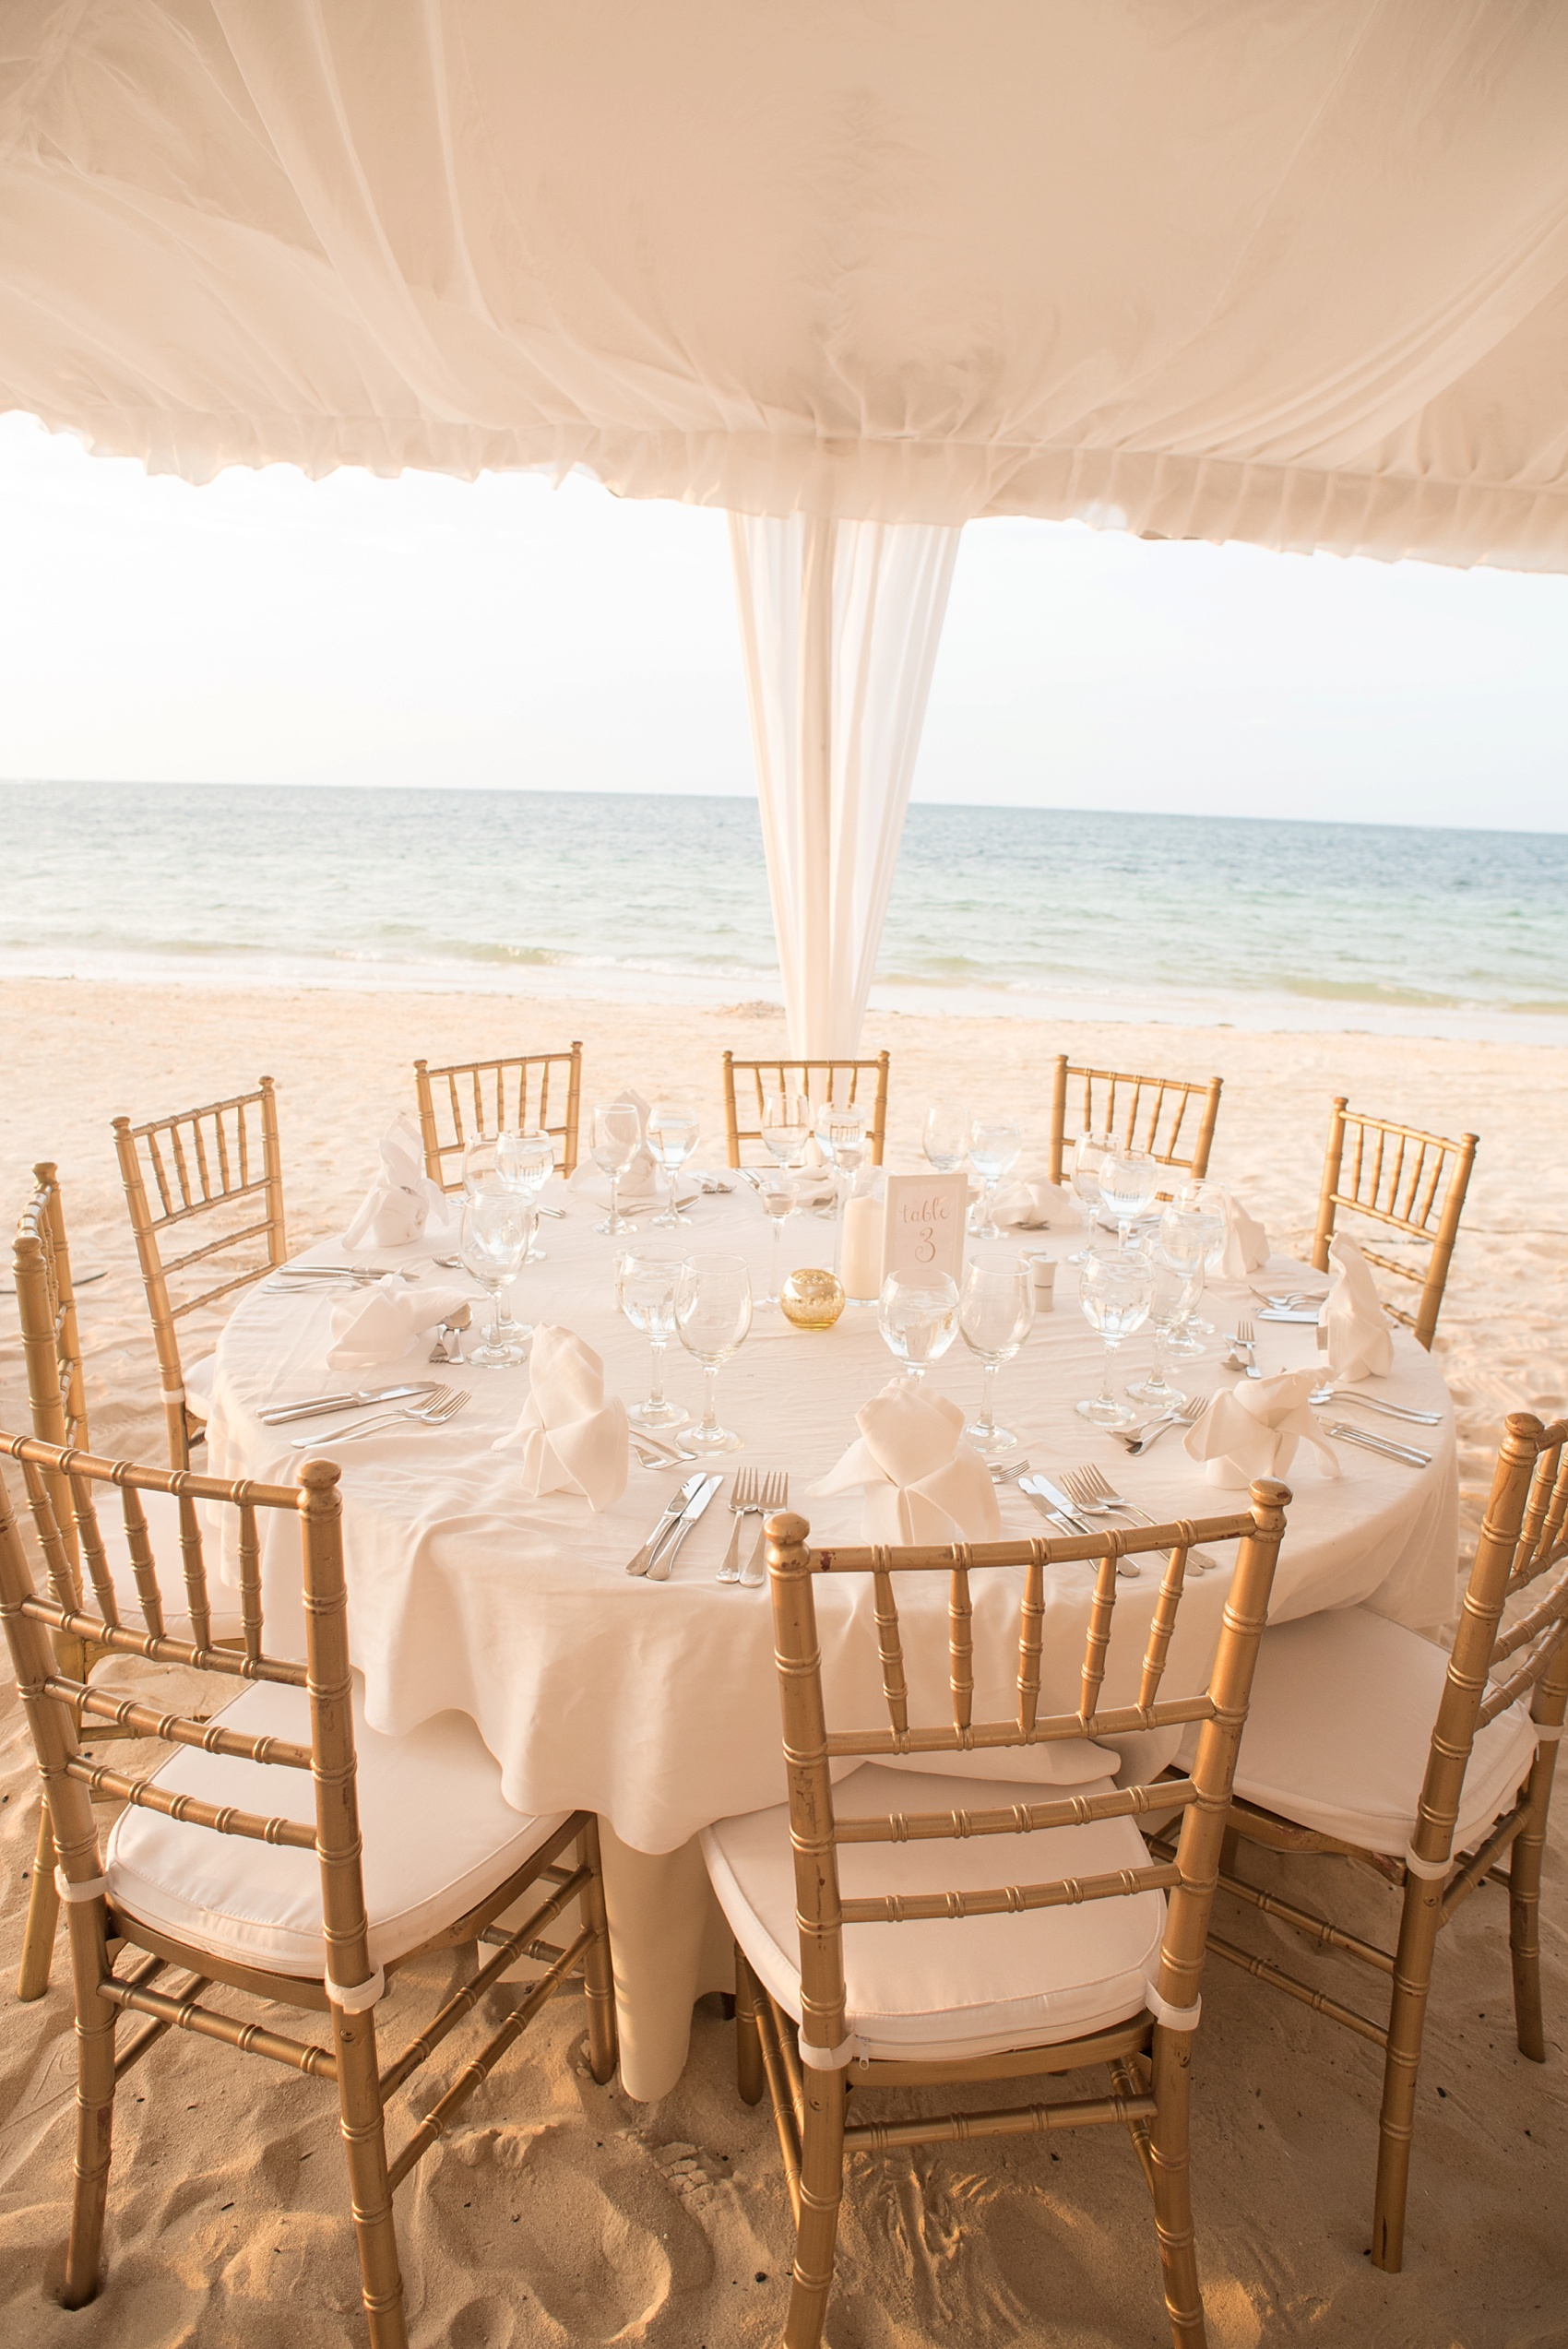 Iberostar Jamaica tented wedding reception table photos. Images by Mikkel Paige Photography.